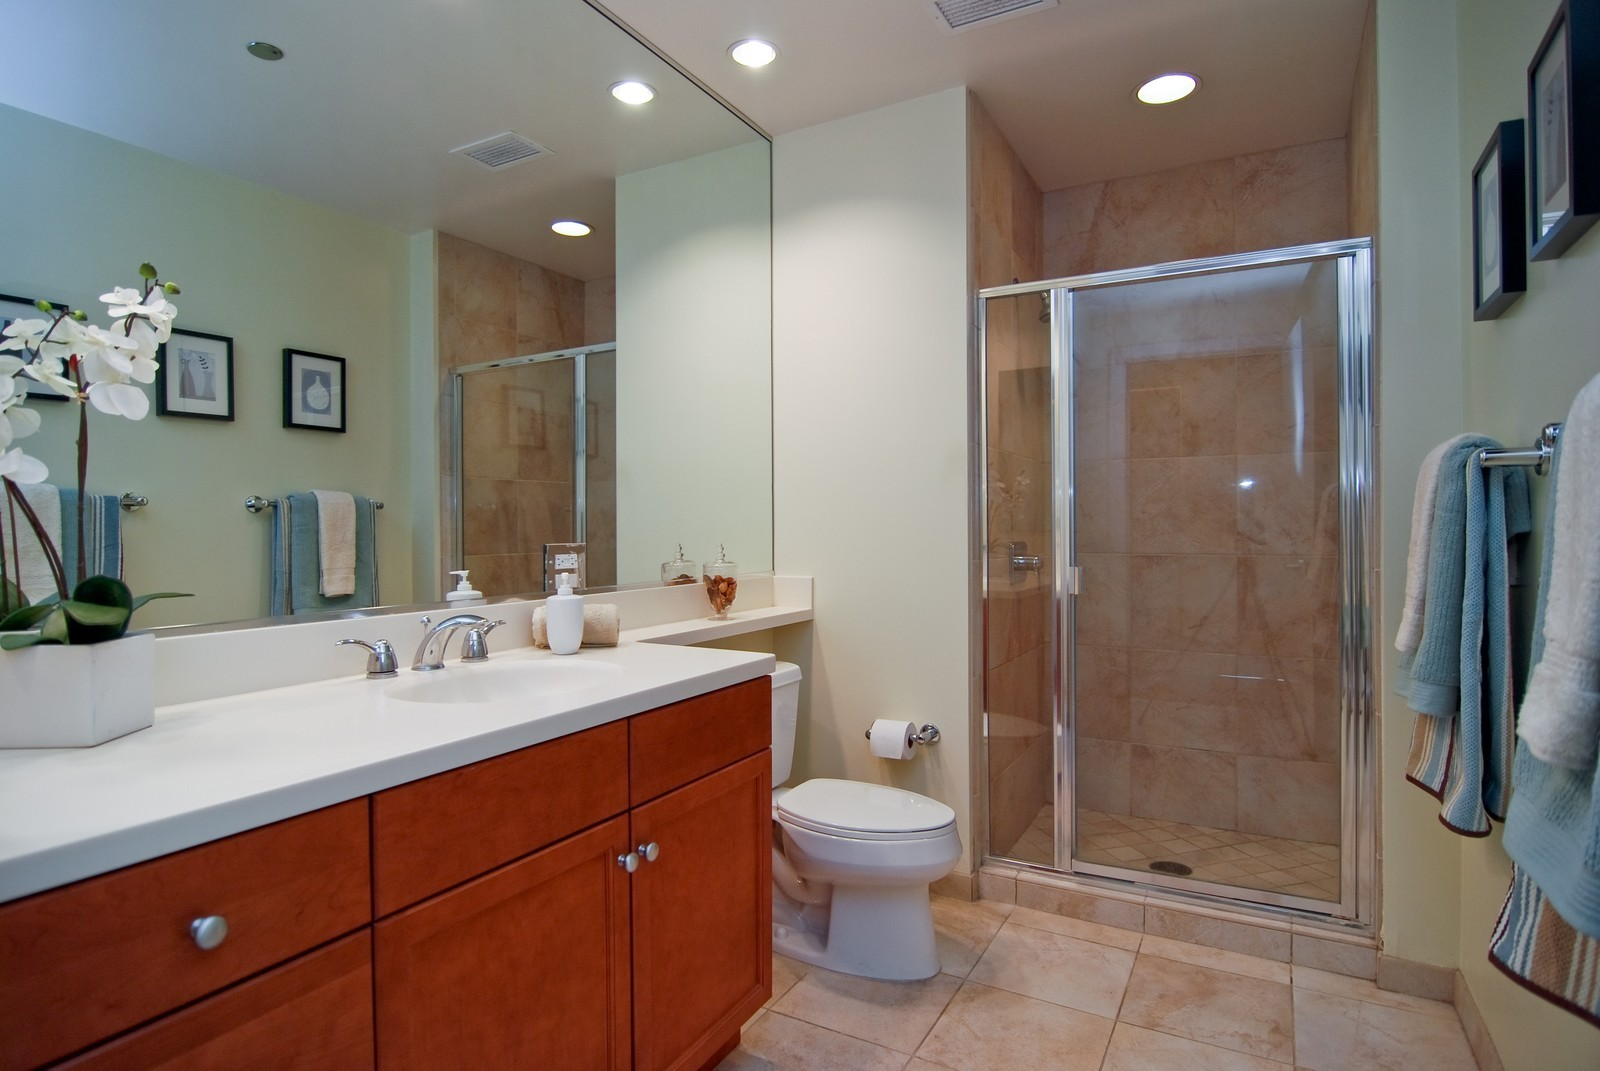 Real Estate Photography - 130 N. Garland Ct., 2903, Chicago, IL, 60602 - Bathroom